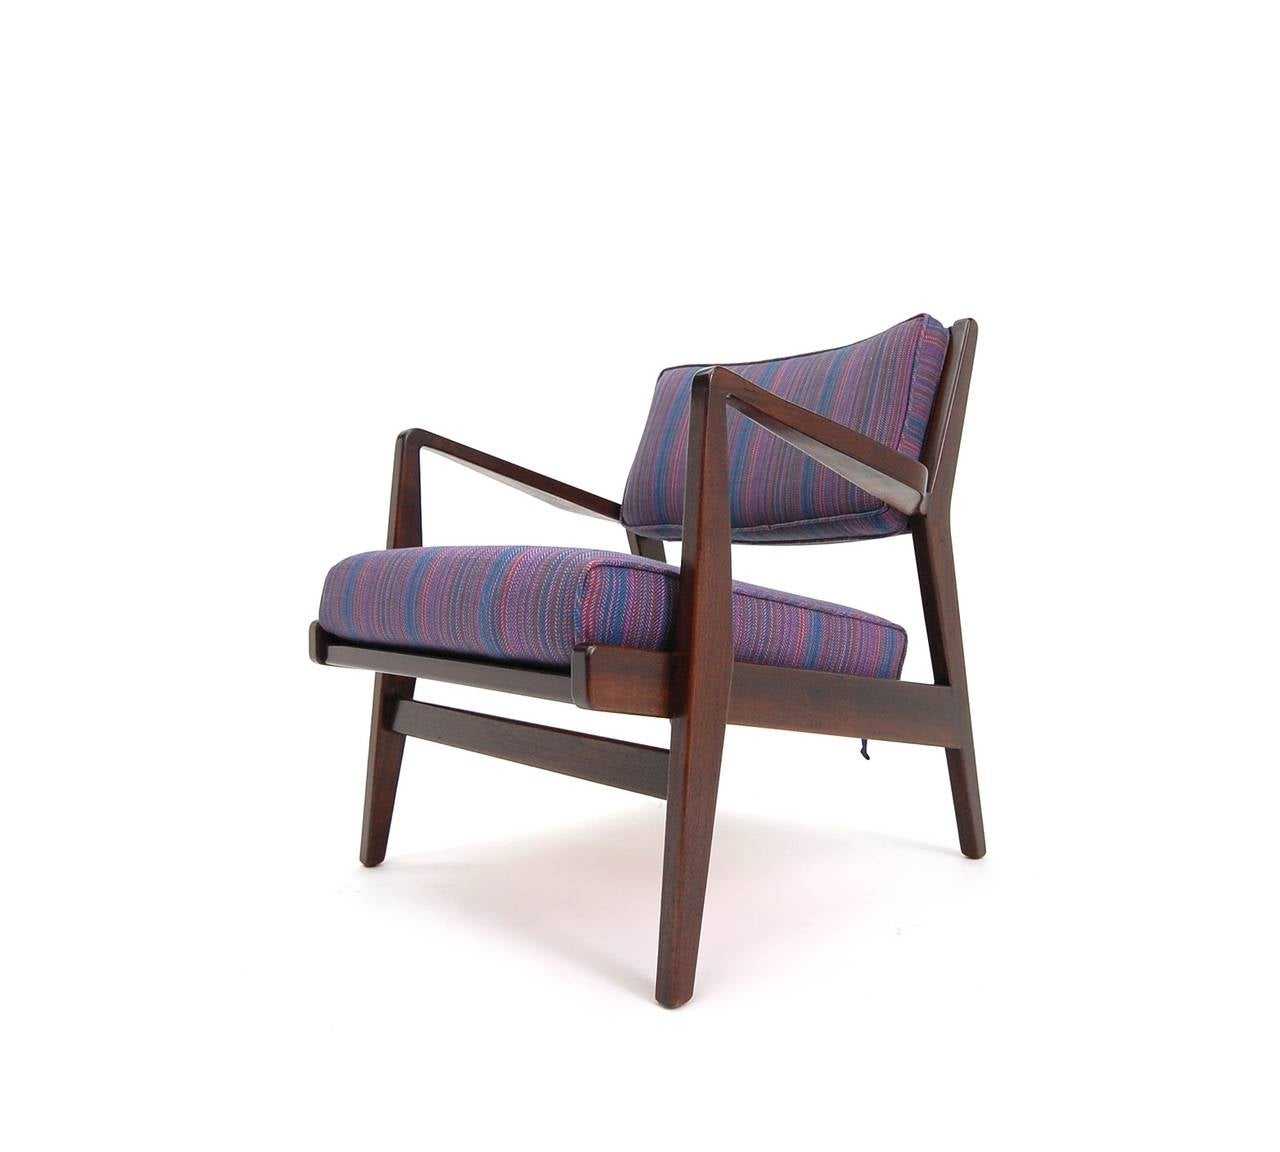 American Pair of Jens Risom Lounge Chairs in Walnut For Sale